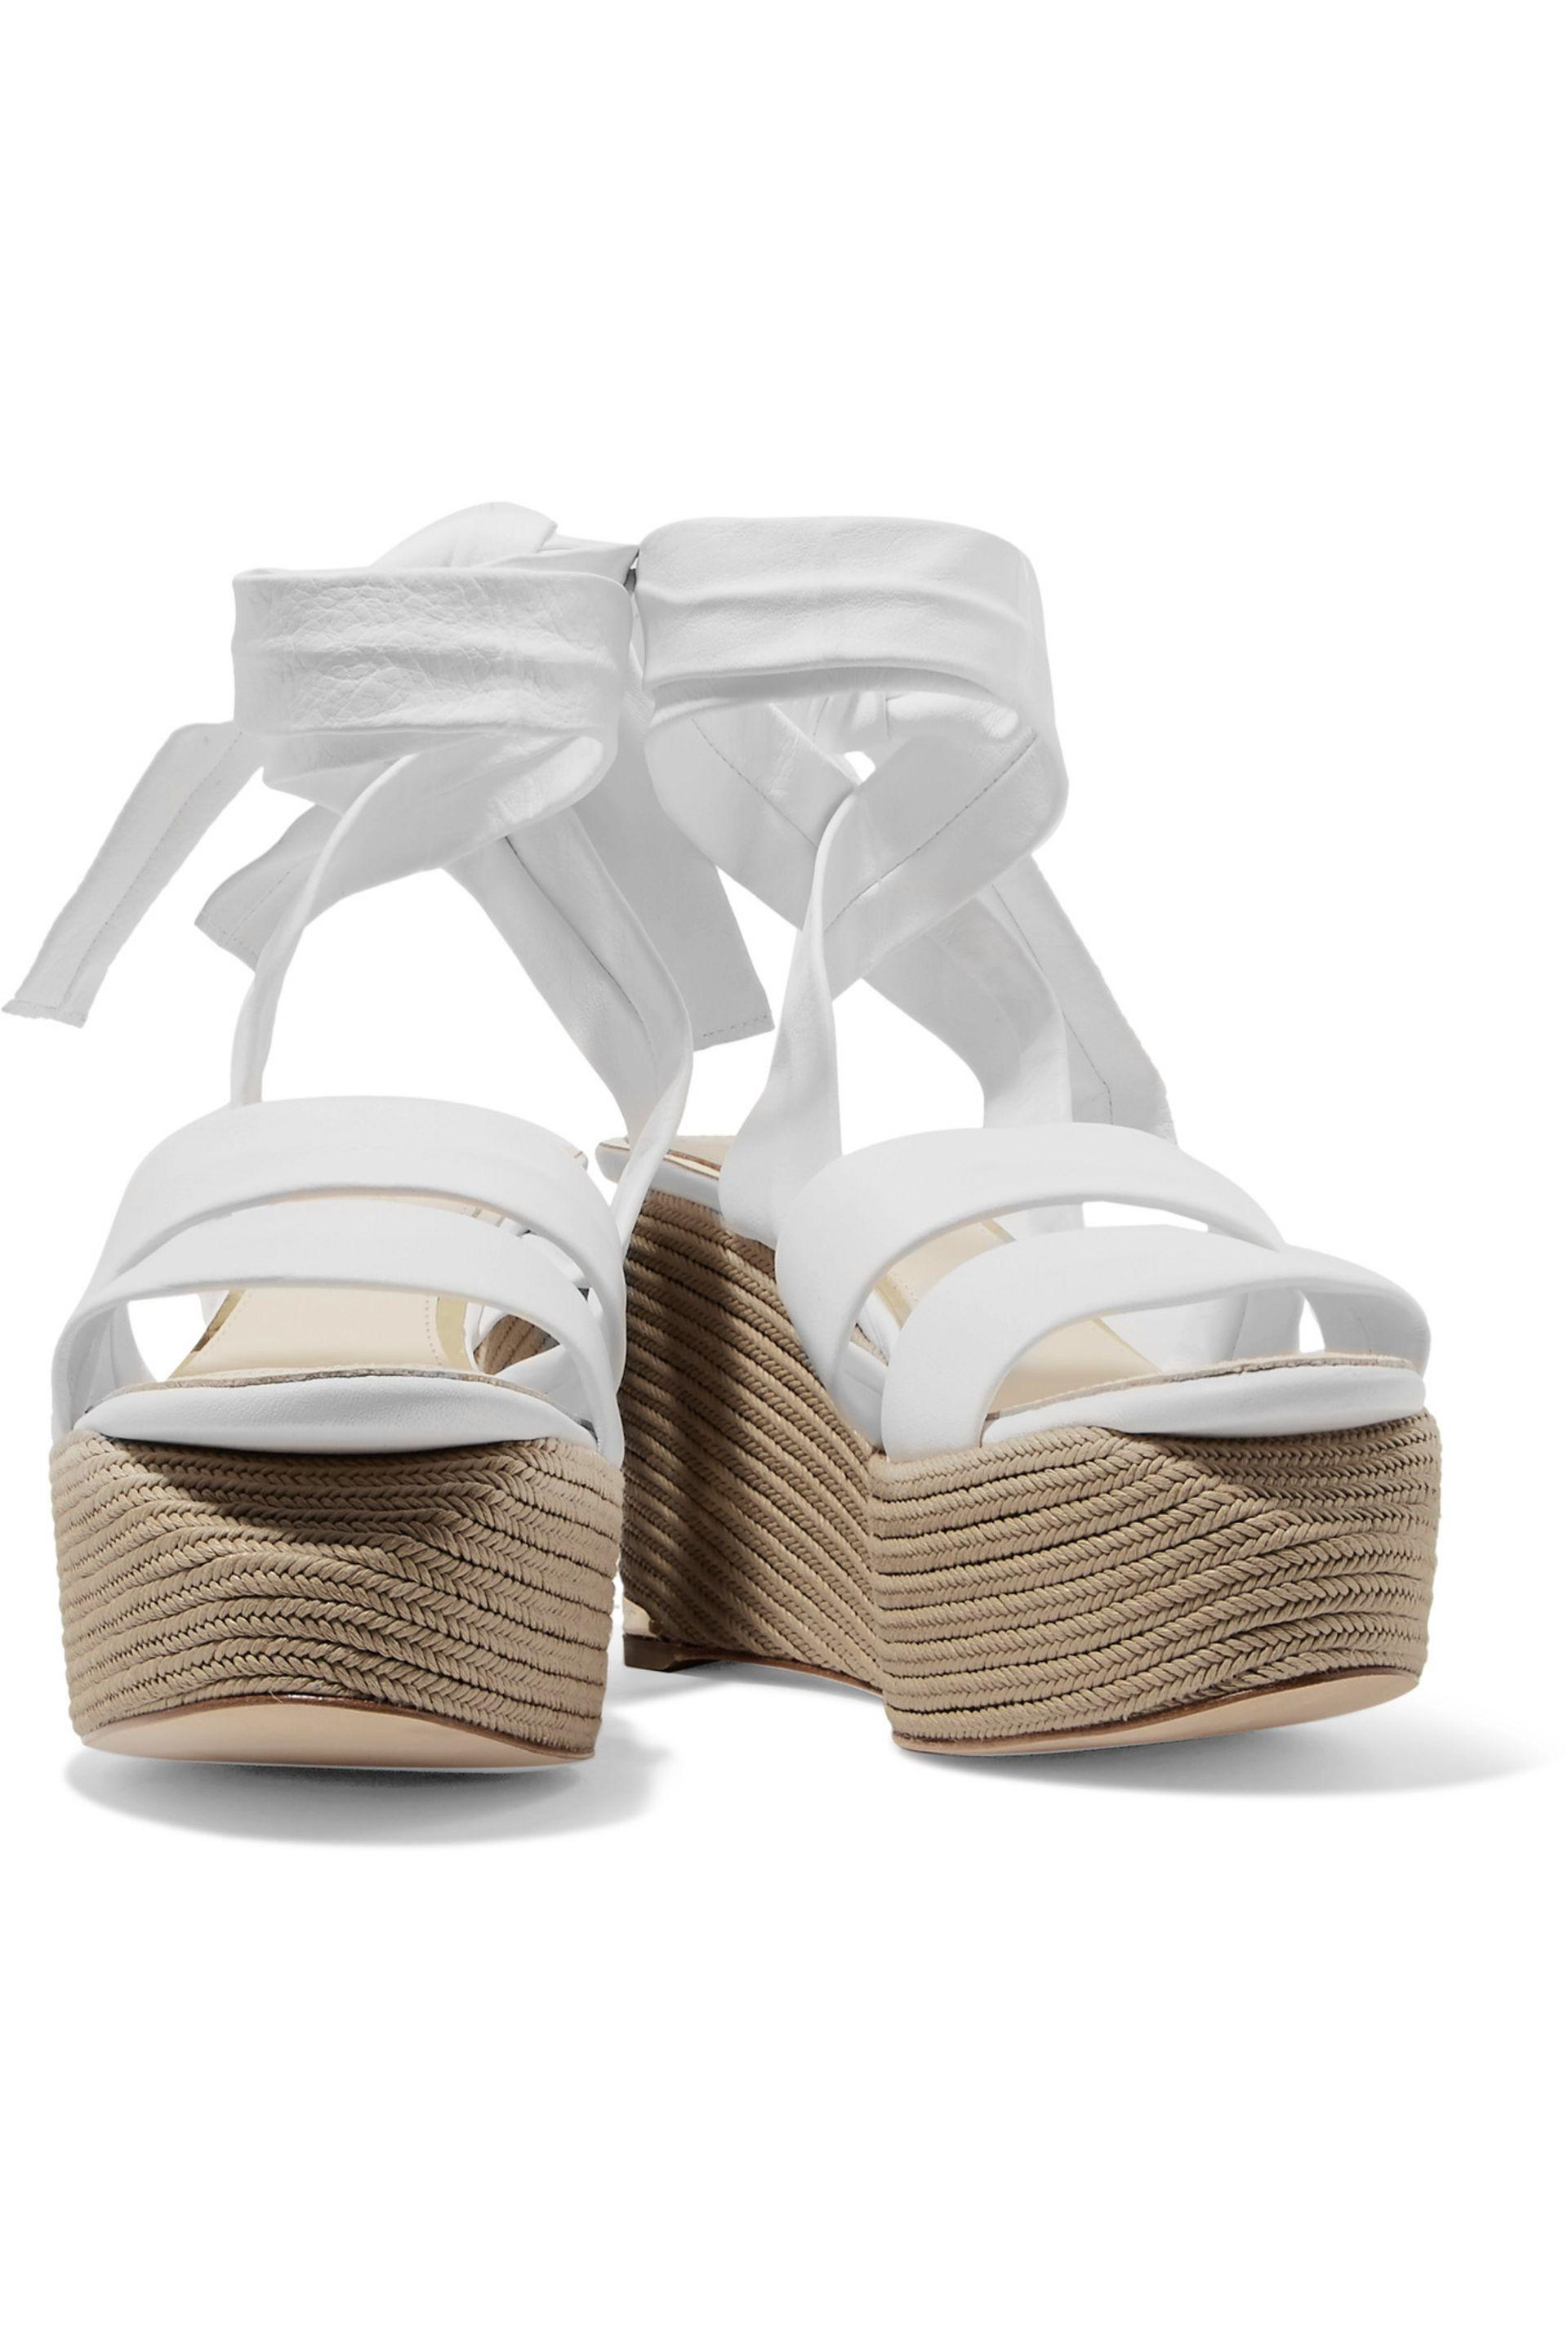 dbb19b3fead Gallery. Previously sold at  THE OUTNET.COM · Women s White Platform Wedges  ...